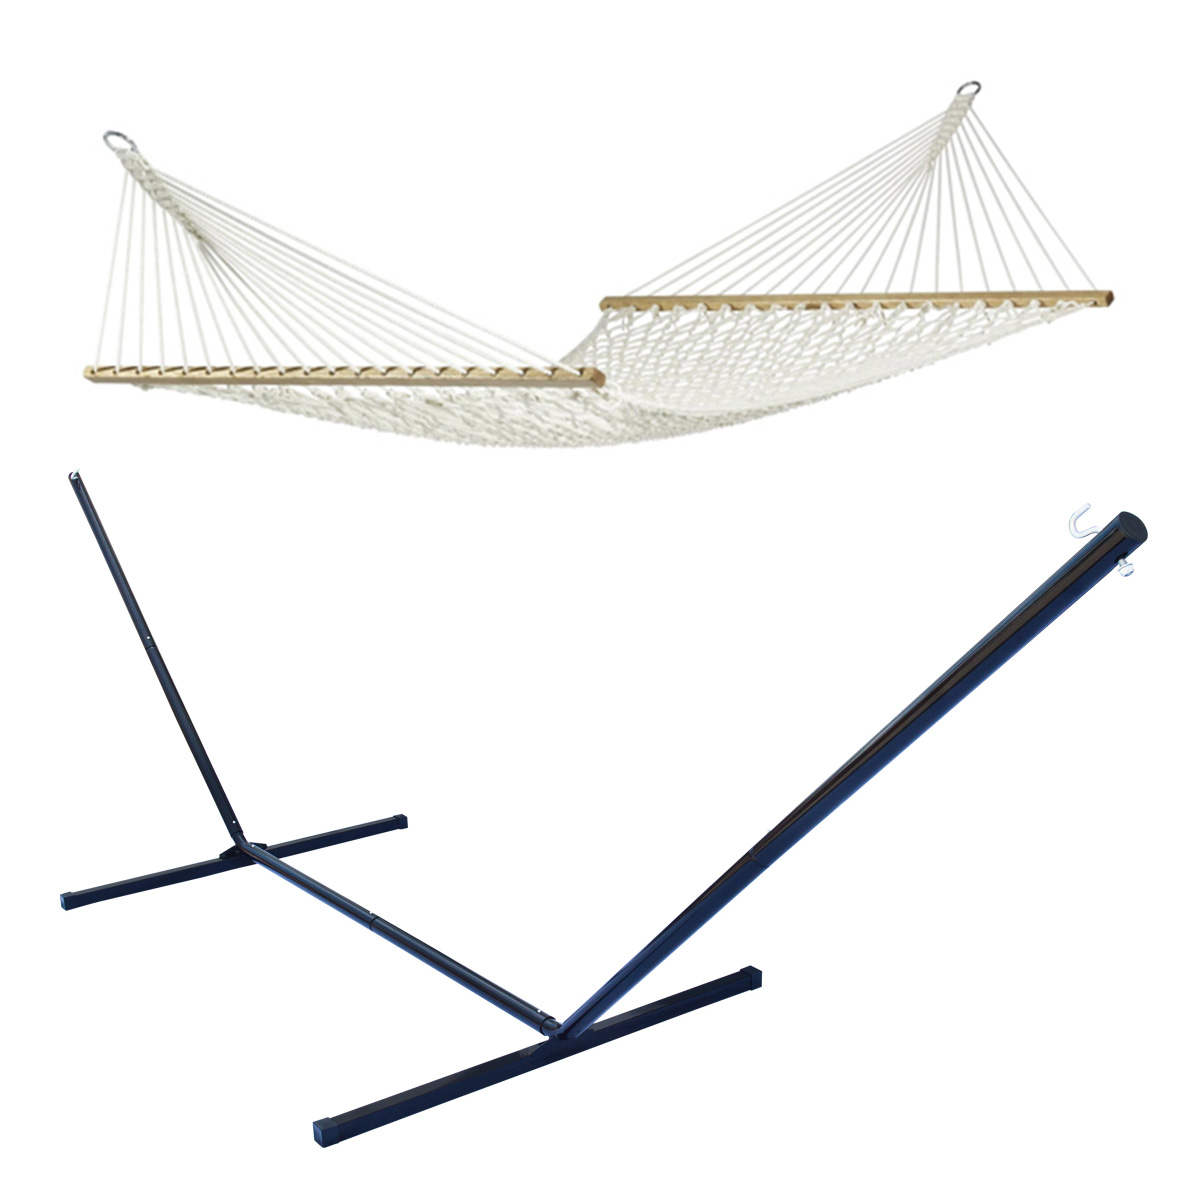 steel hammock chair stand best nursery rocking outdoor swing cotton double bed rope 43 metal